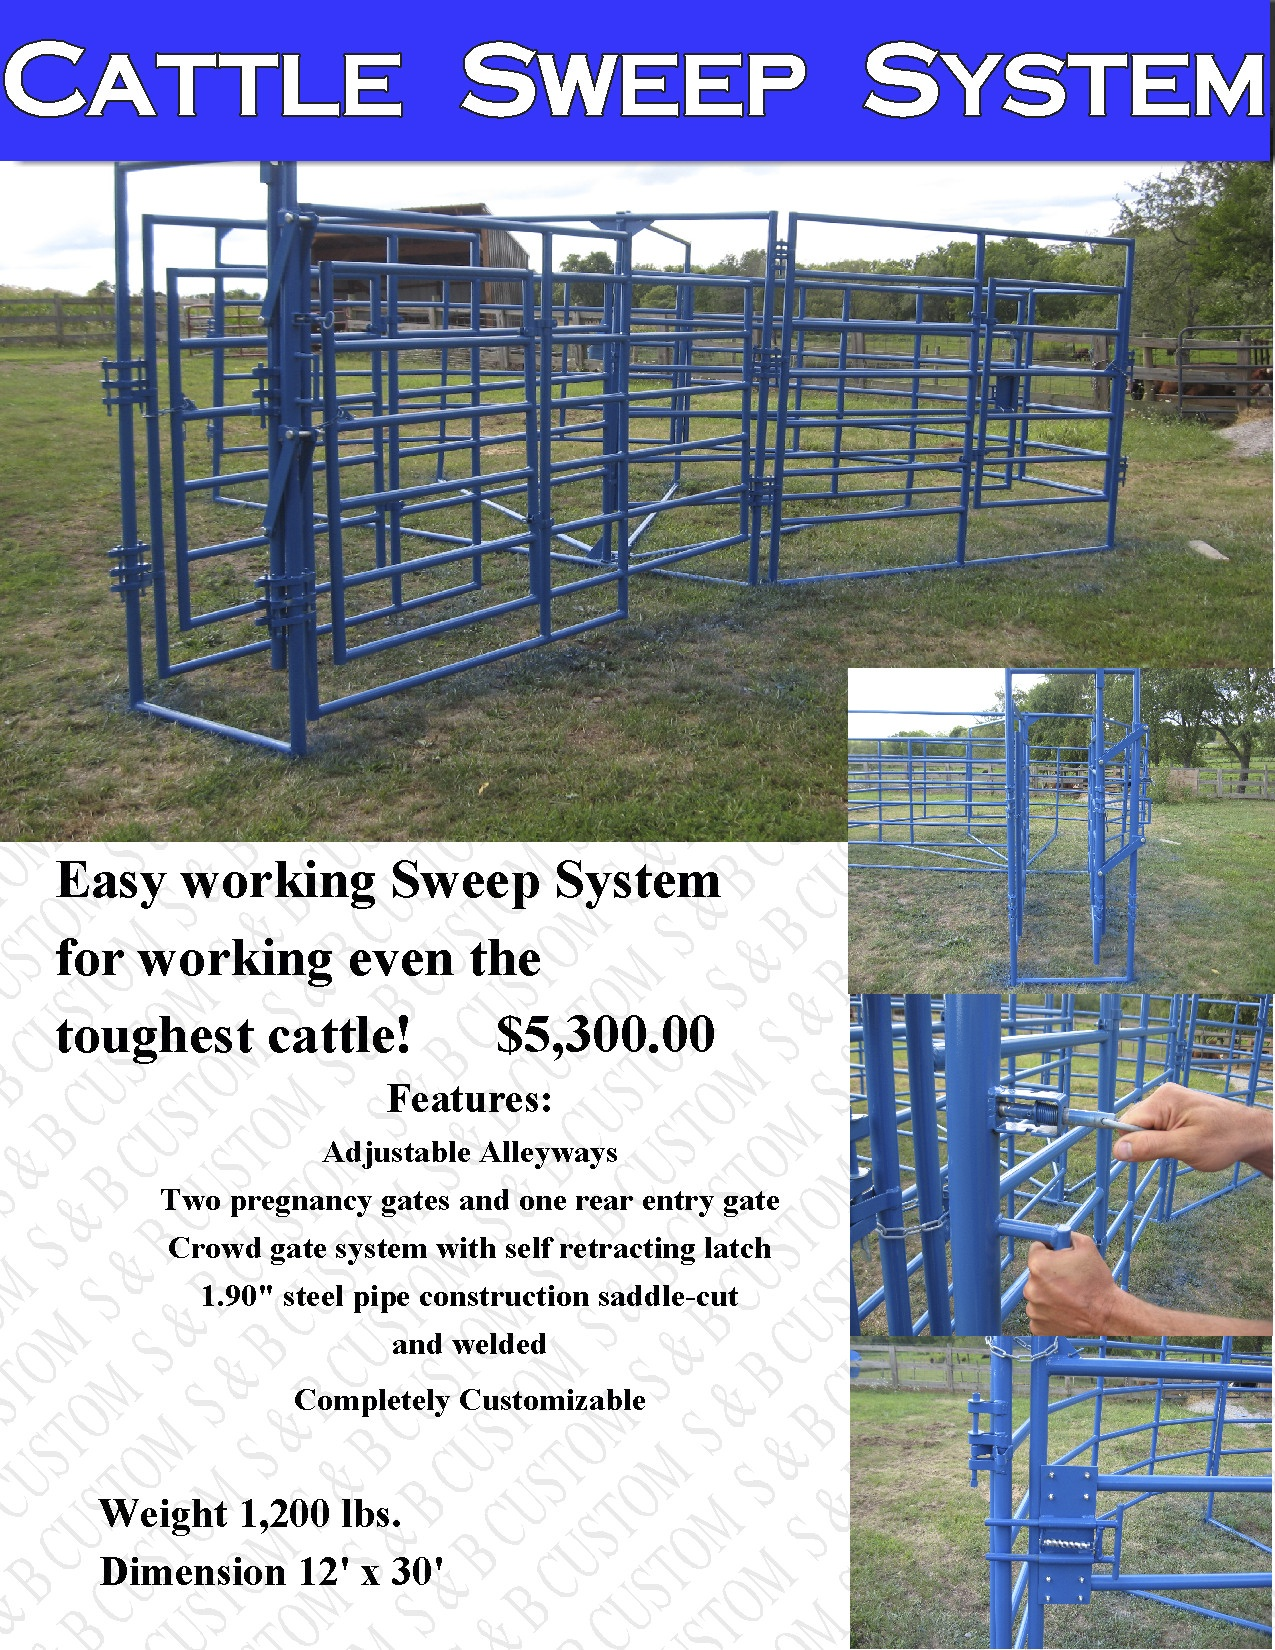 Cattle Sweep System Litterature copy